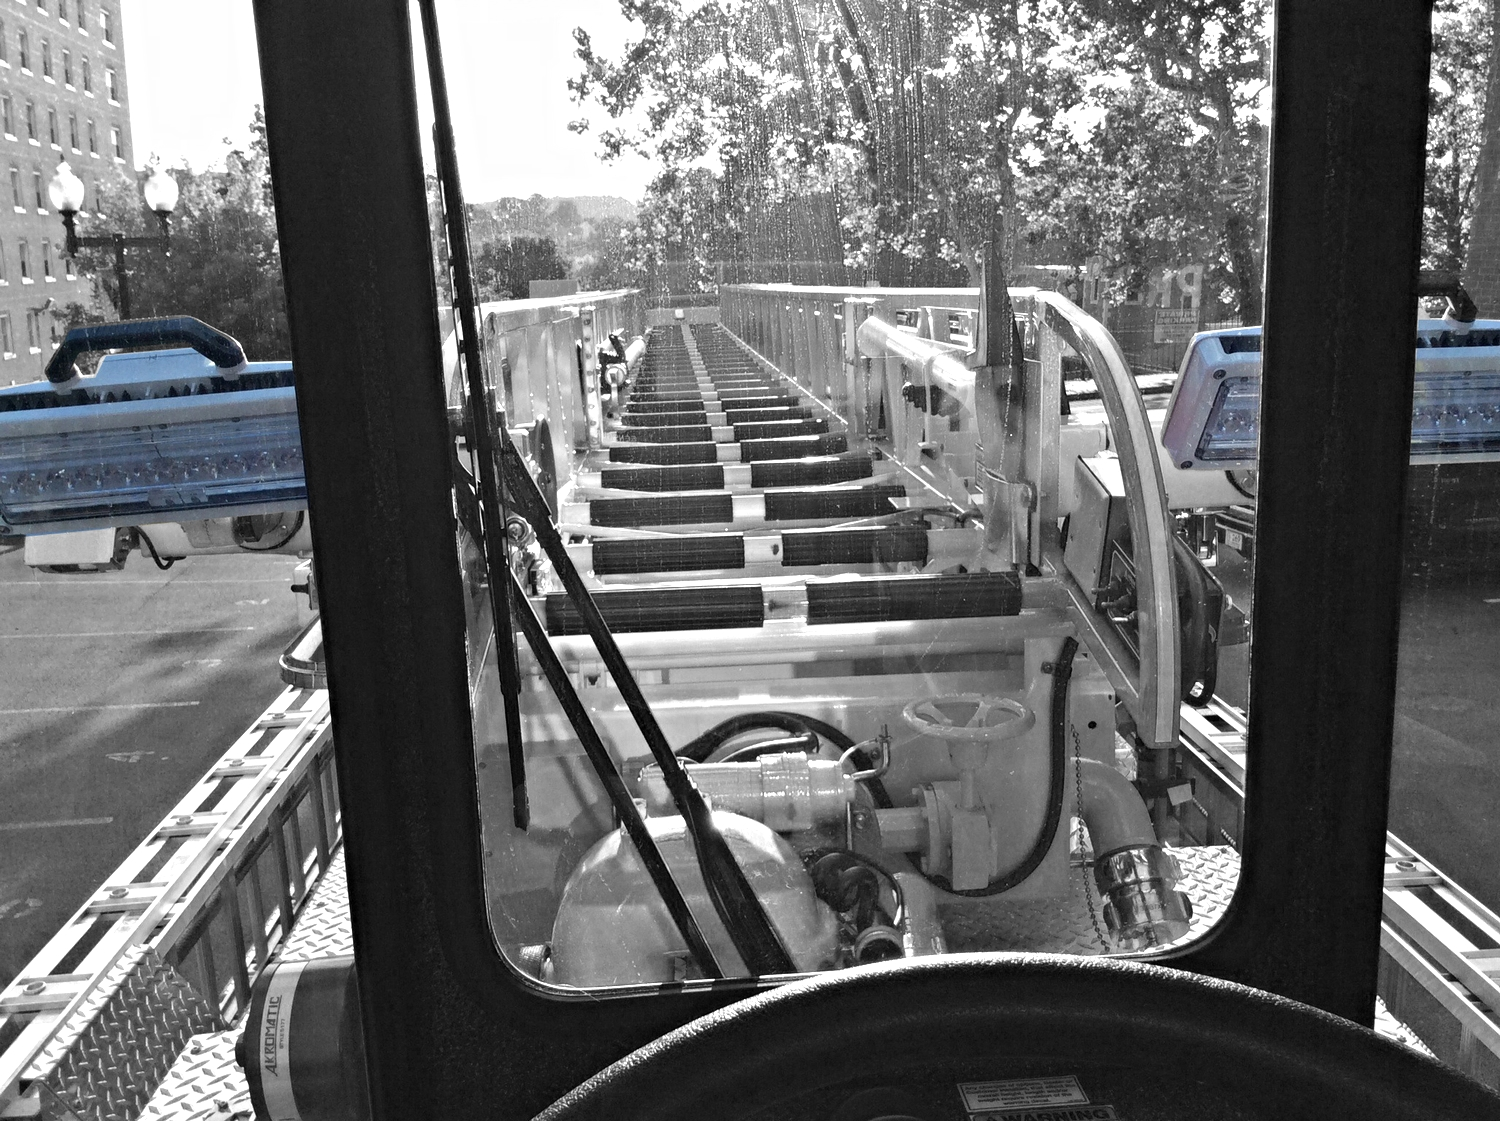 (Pictures from the tiller cab do not always represent the most accurate view)